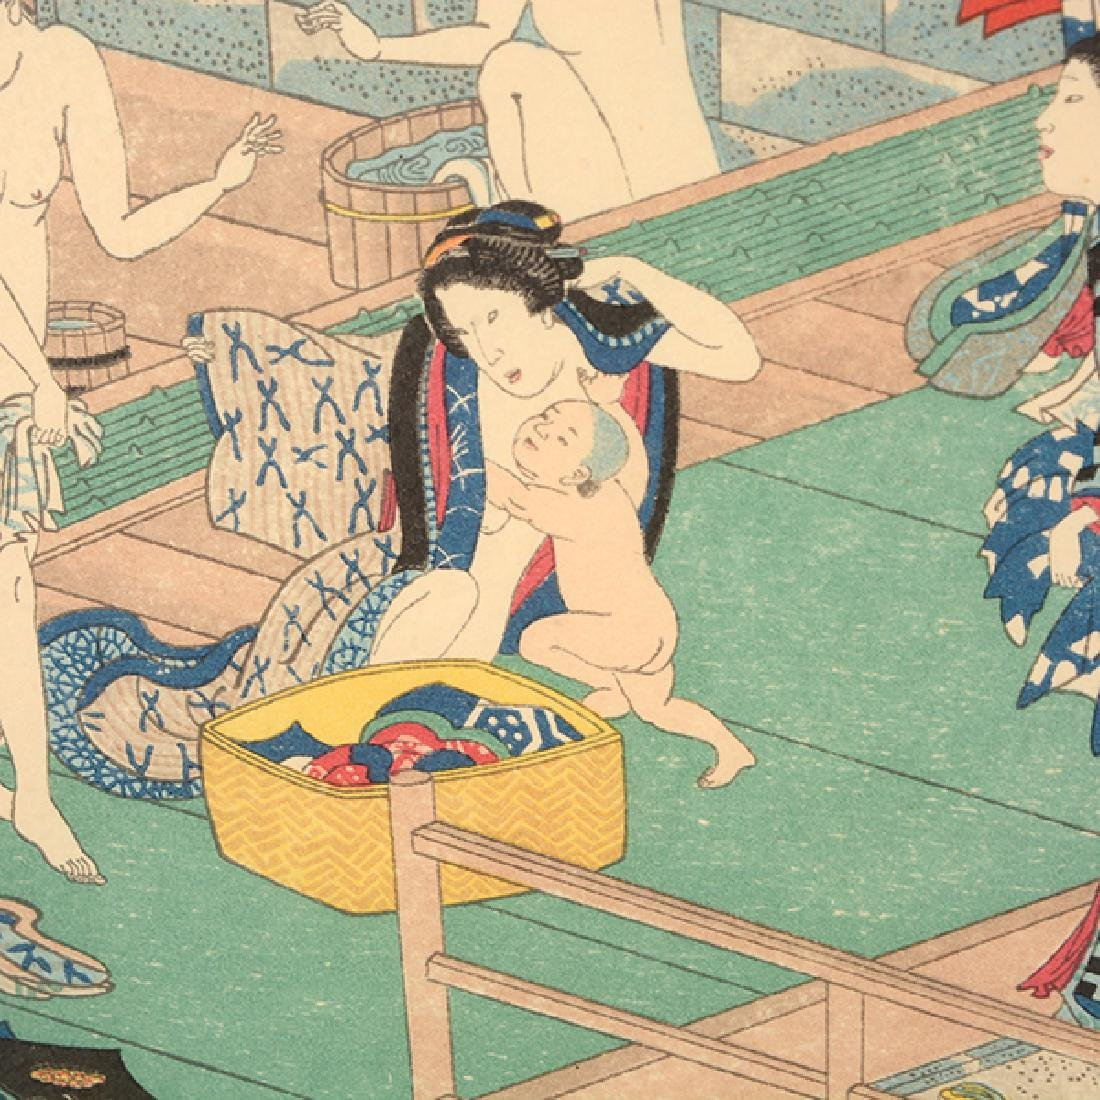 Utagawa Yoshiiku and Toyokuni: Two Woodblocks - 6